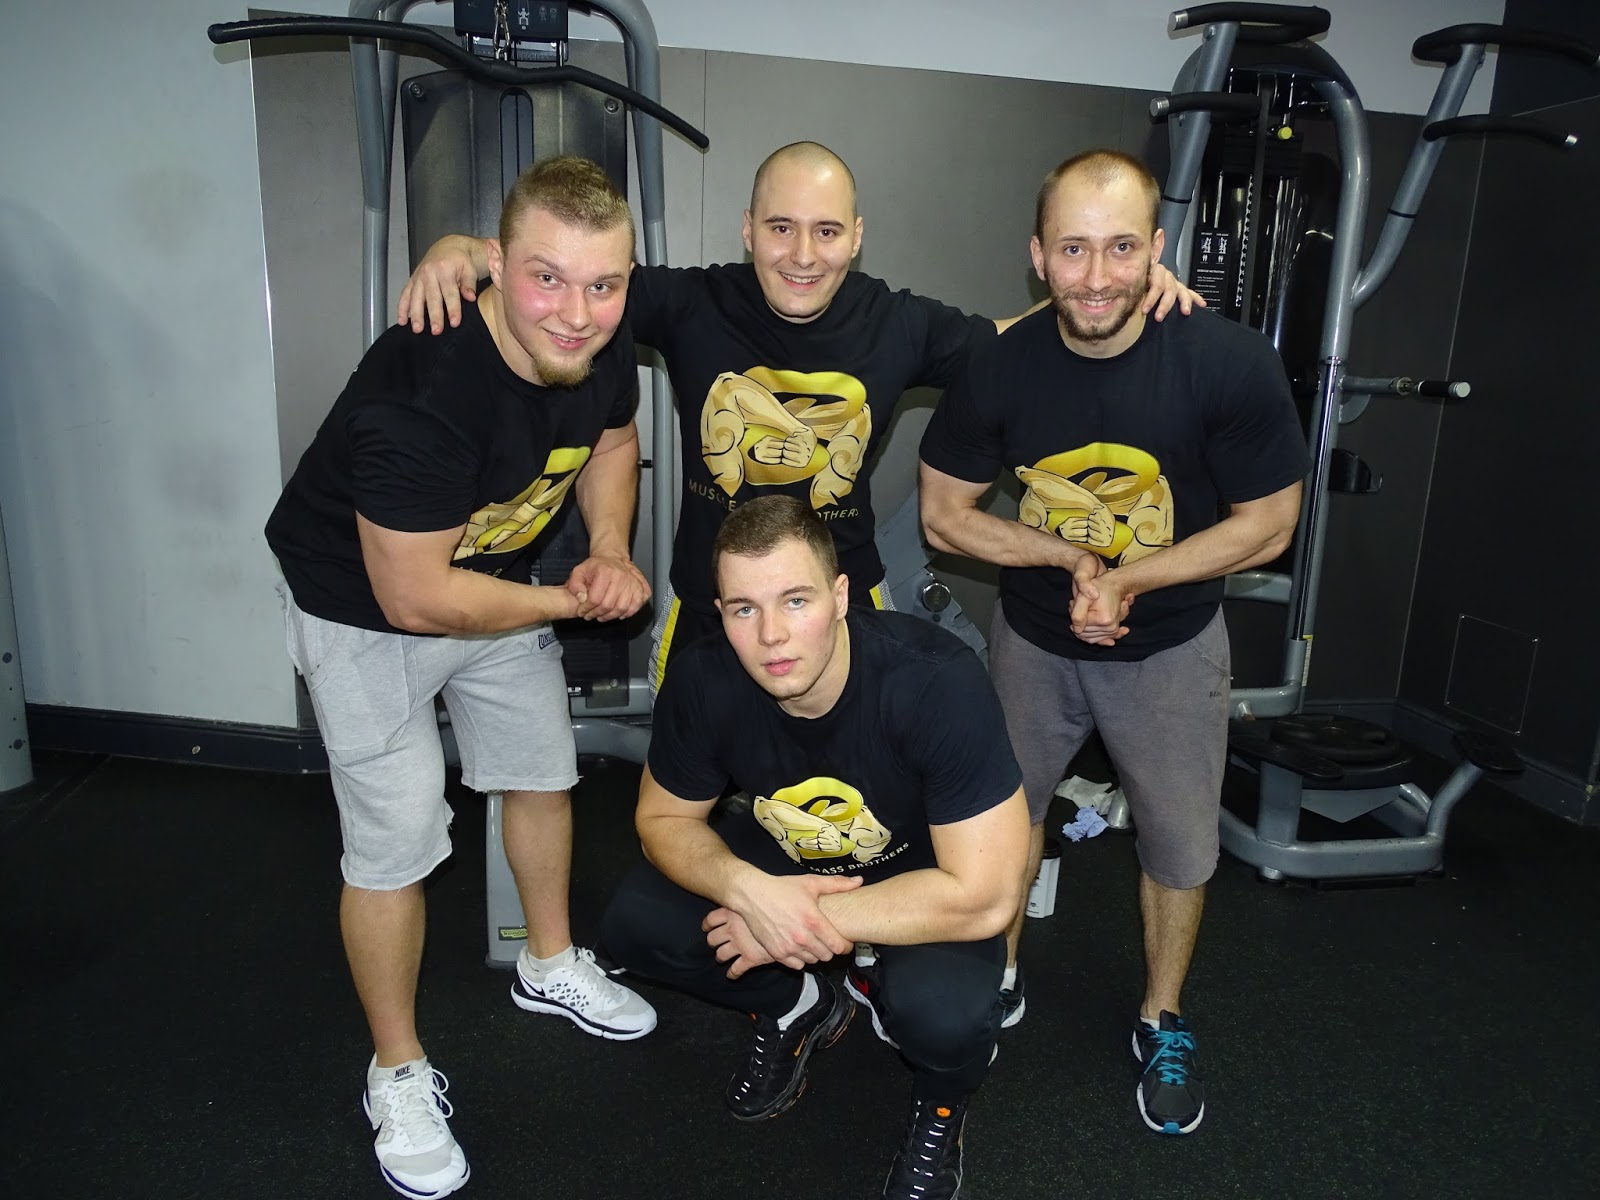 Muscle Mass Brothers - Black T-Shirt